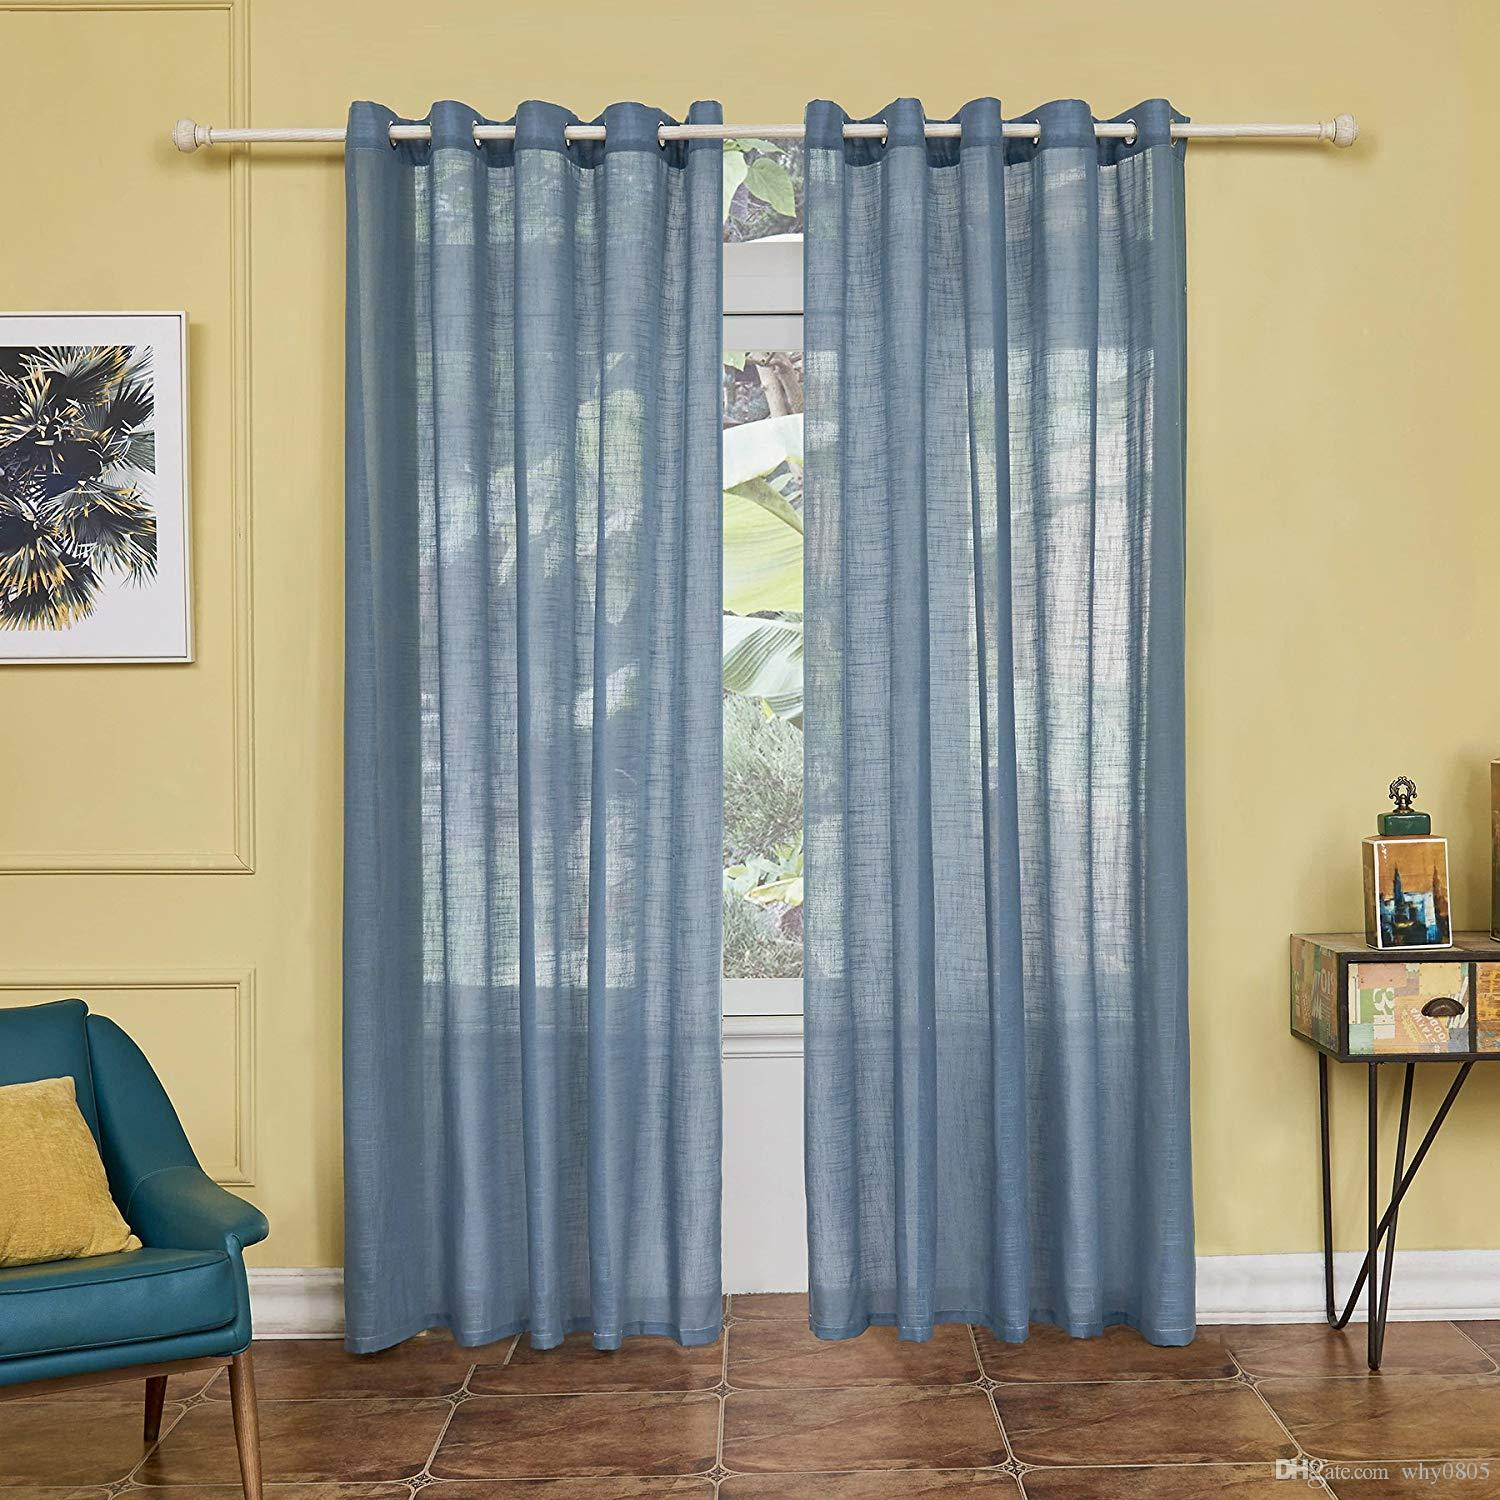 2018 2 Panel Set Digital Printed Window Curtains For Bedroom Living Room  Dining Room Kids Room Window Drapes W52*l84, Blue From Why0805, $40.11 |  Dhgate.Com